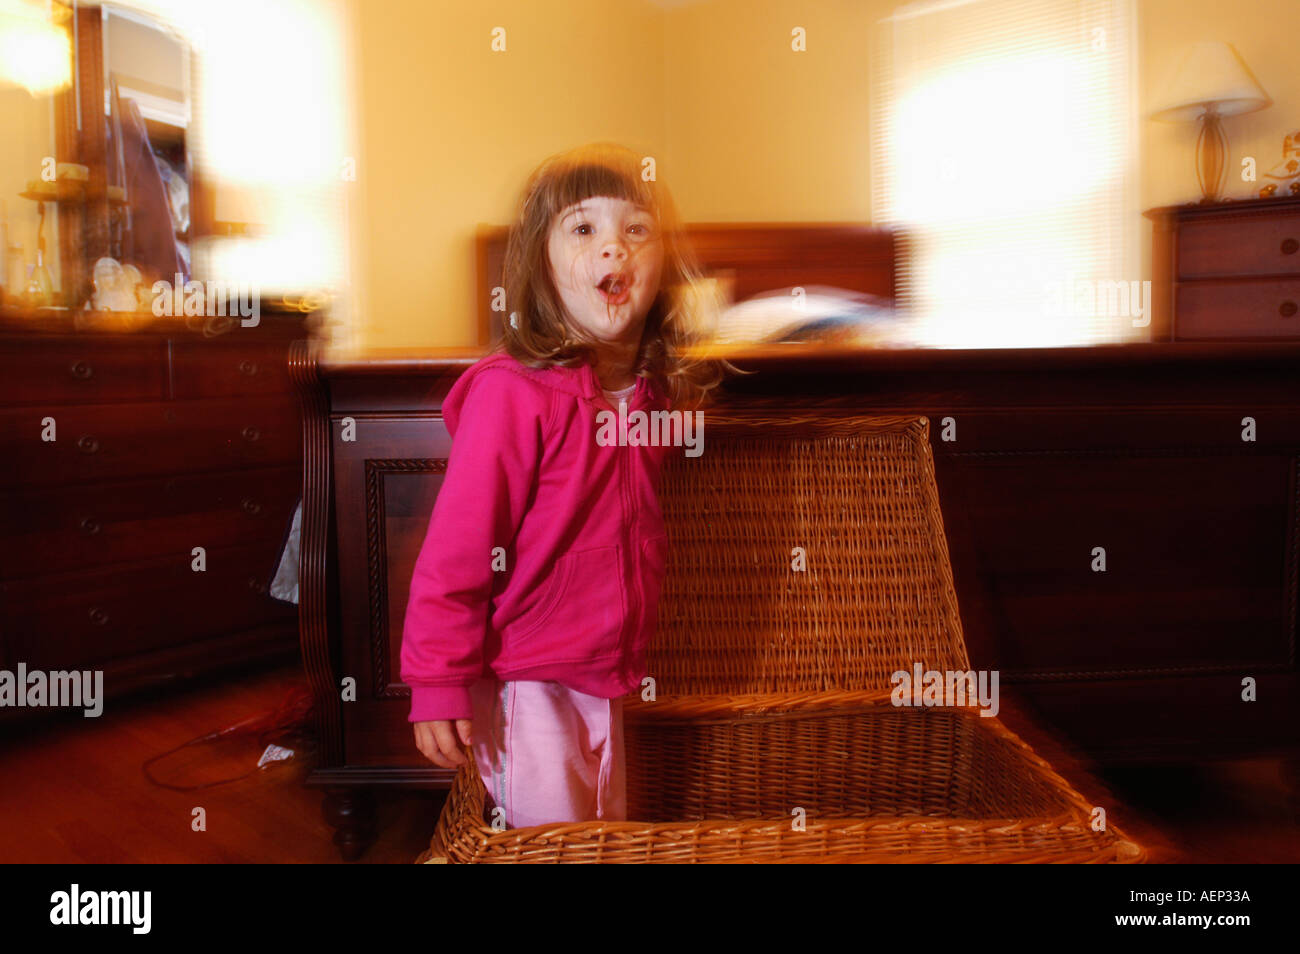 young girl jumps from a basket while playing hide and seek - Stock Image